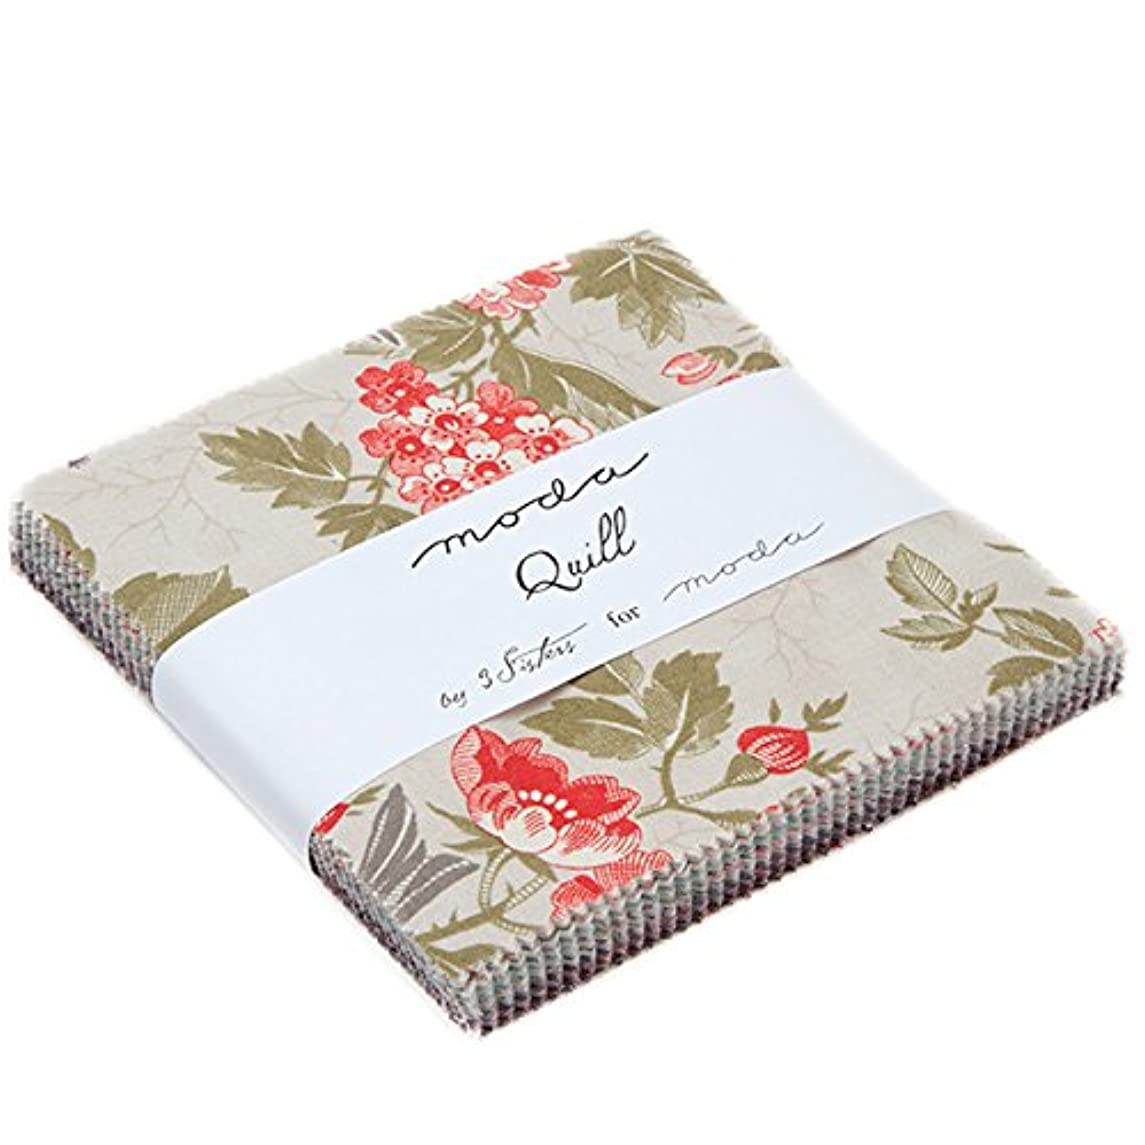 MODA Quill Charm Pack by 3 Sisters; 42-5